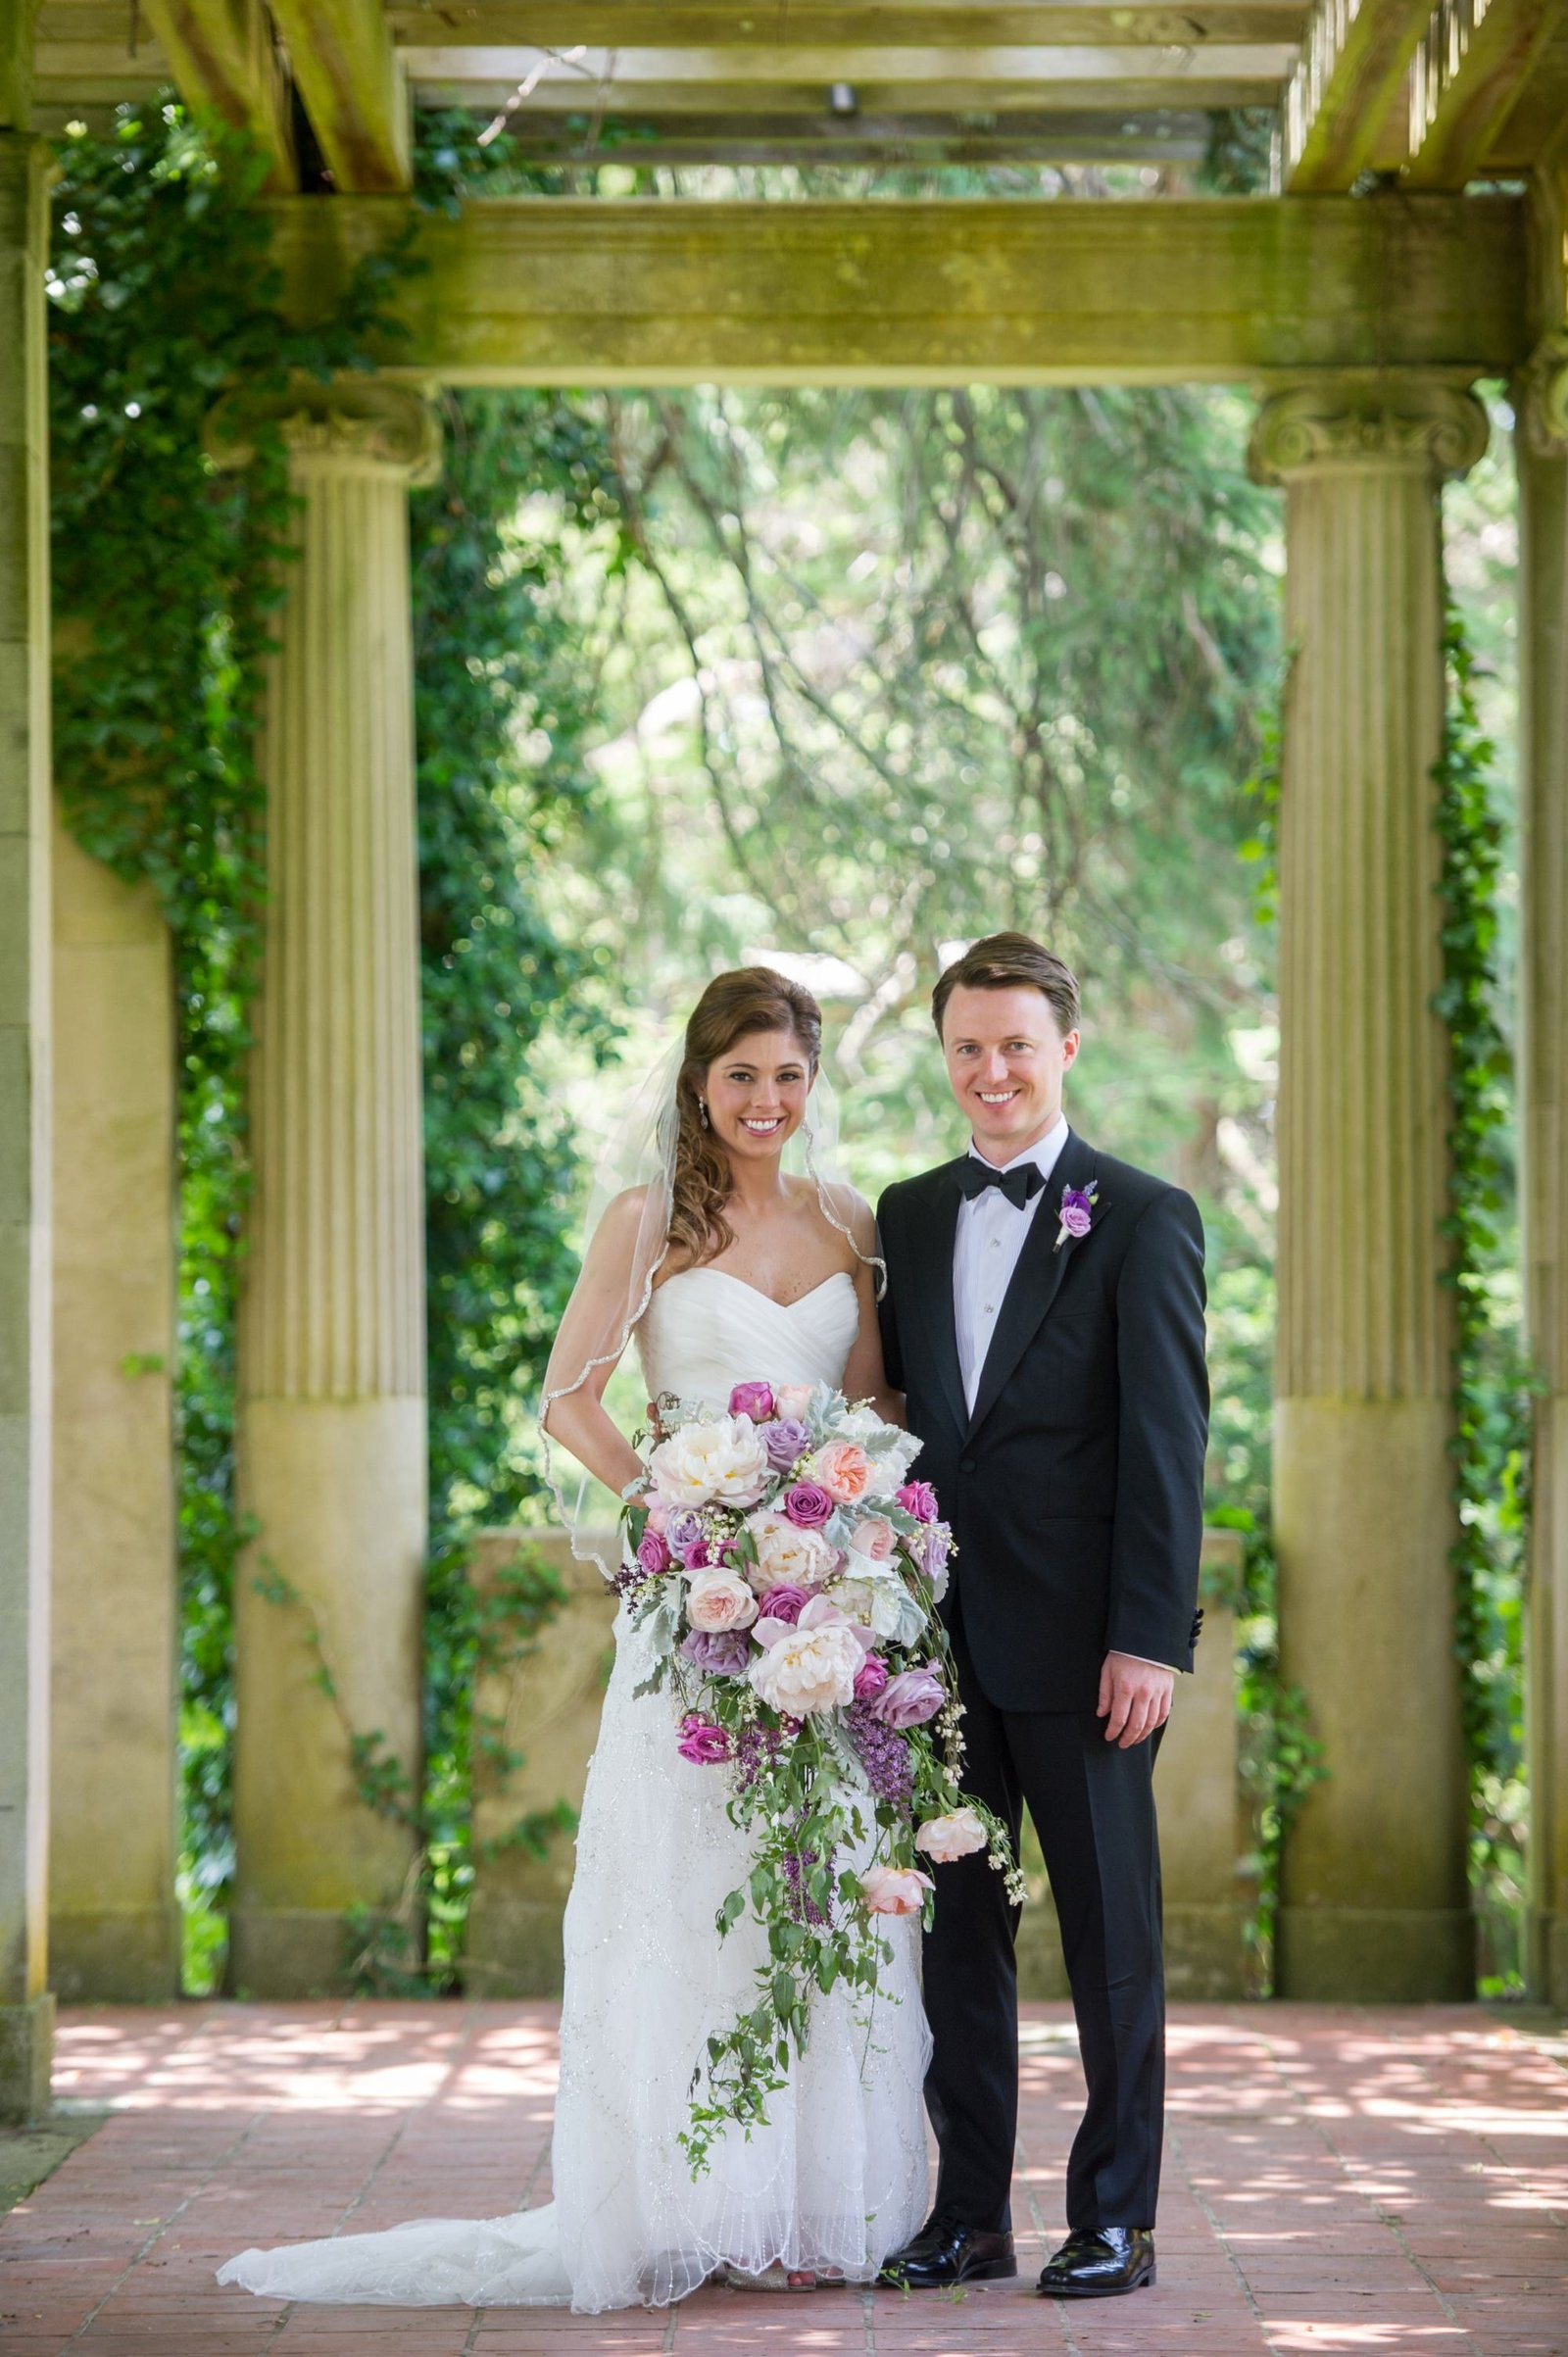 Gatsby themed wedding in purple and blush at The Branford House in Groton, CT